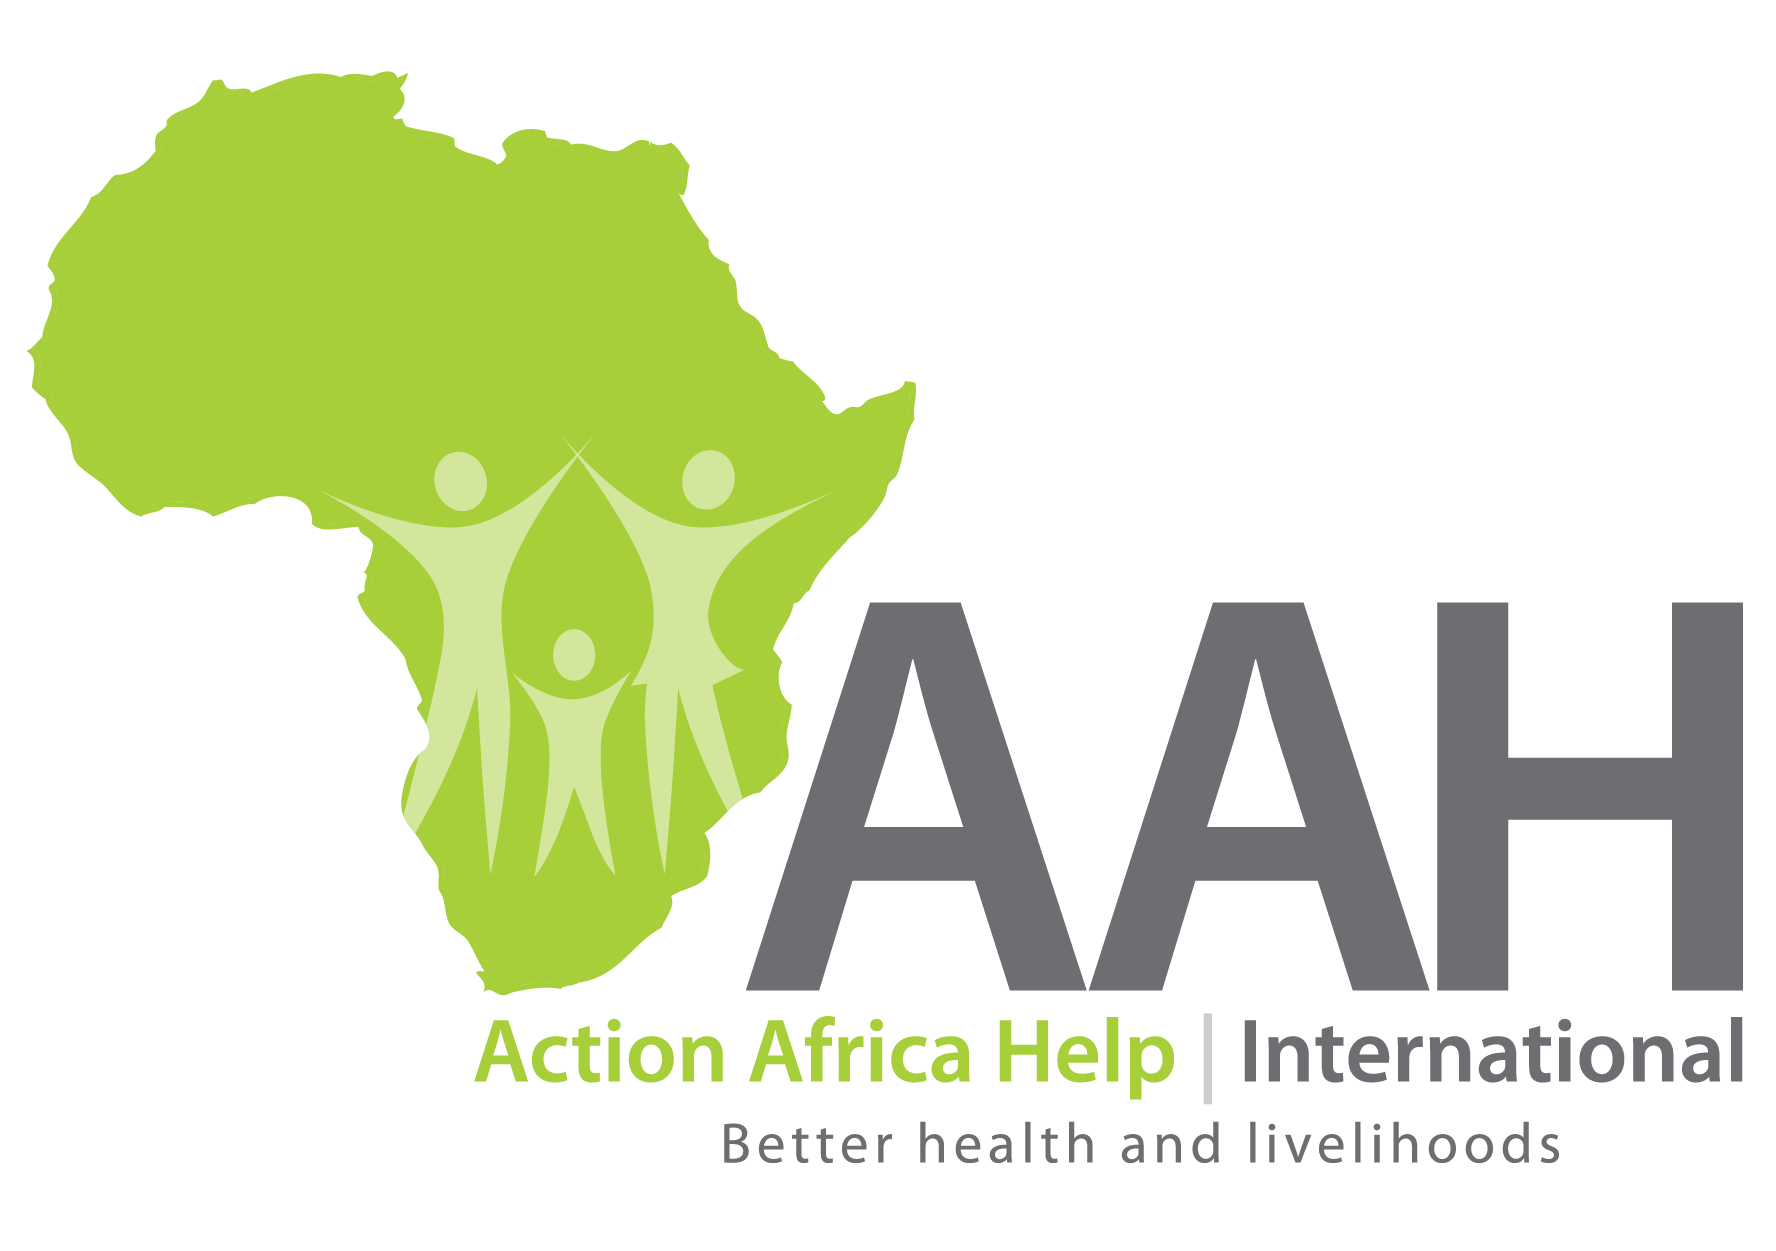 Action Africa Help International